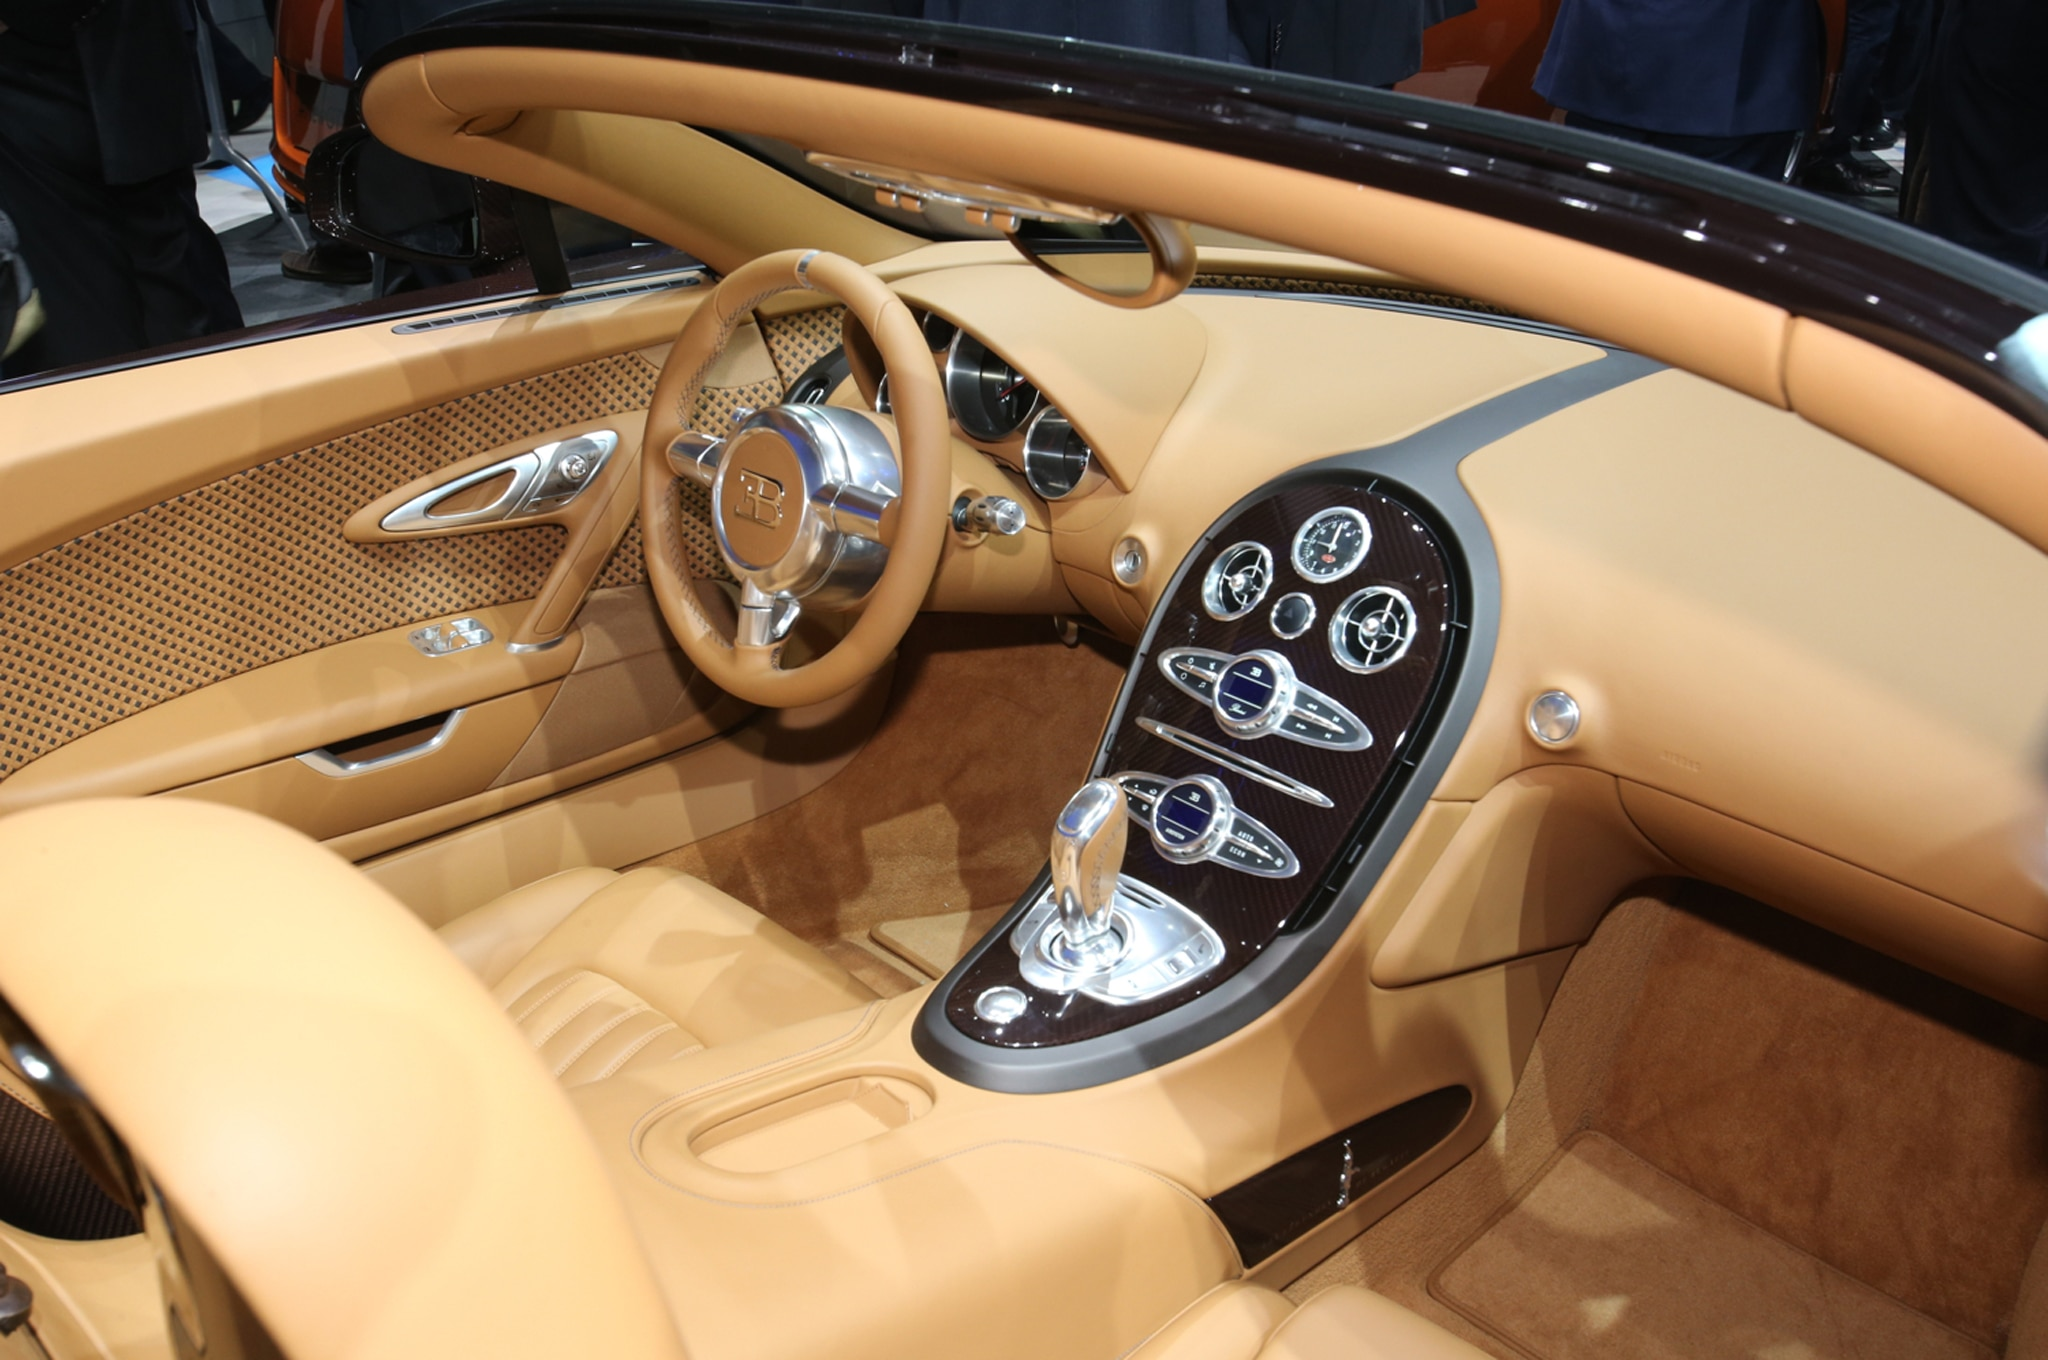 Bugatti-Veyron-Grand-Sport-Vitesse-Legends-Rembrandt-interior Cozy Bugatti Veyron Grand Sport Vitesse Engine Cars Trend